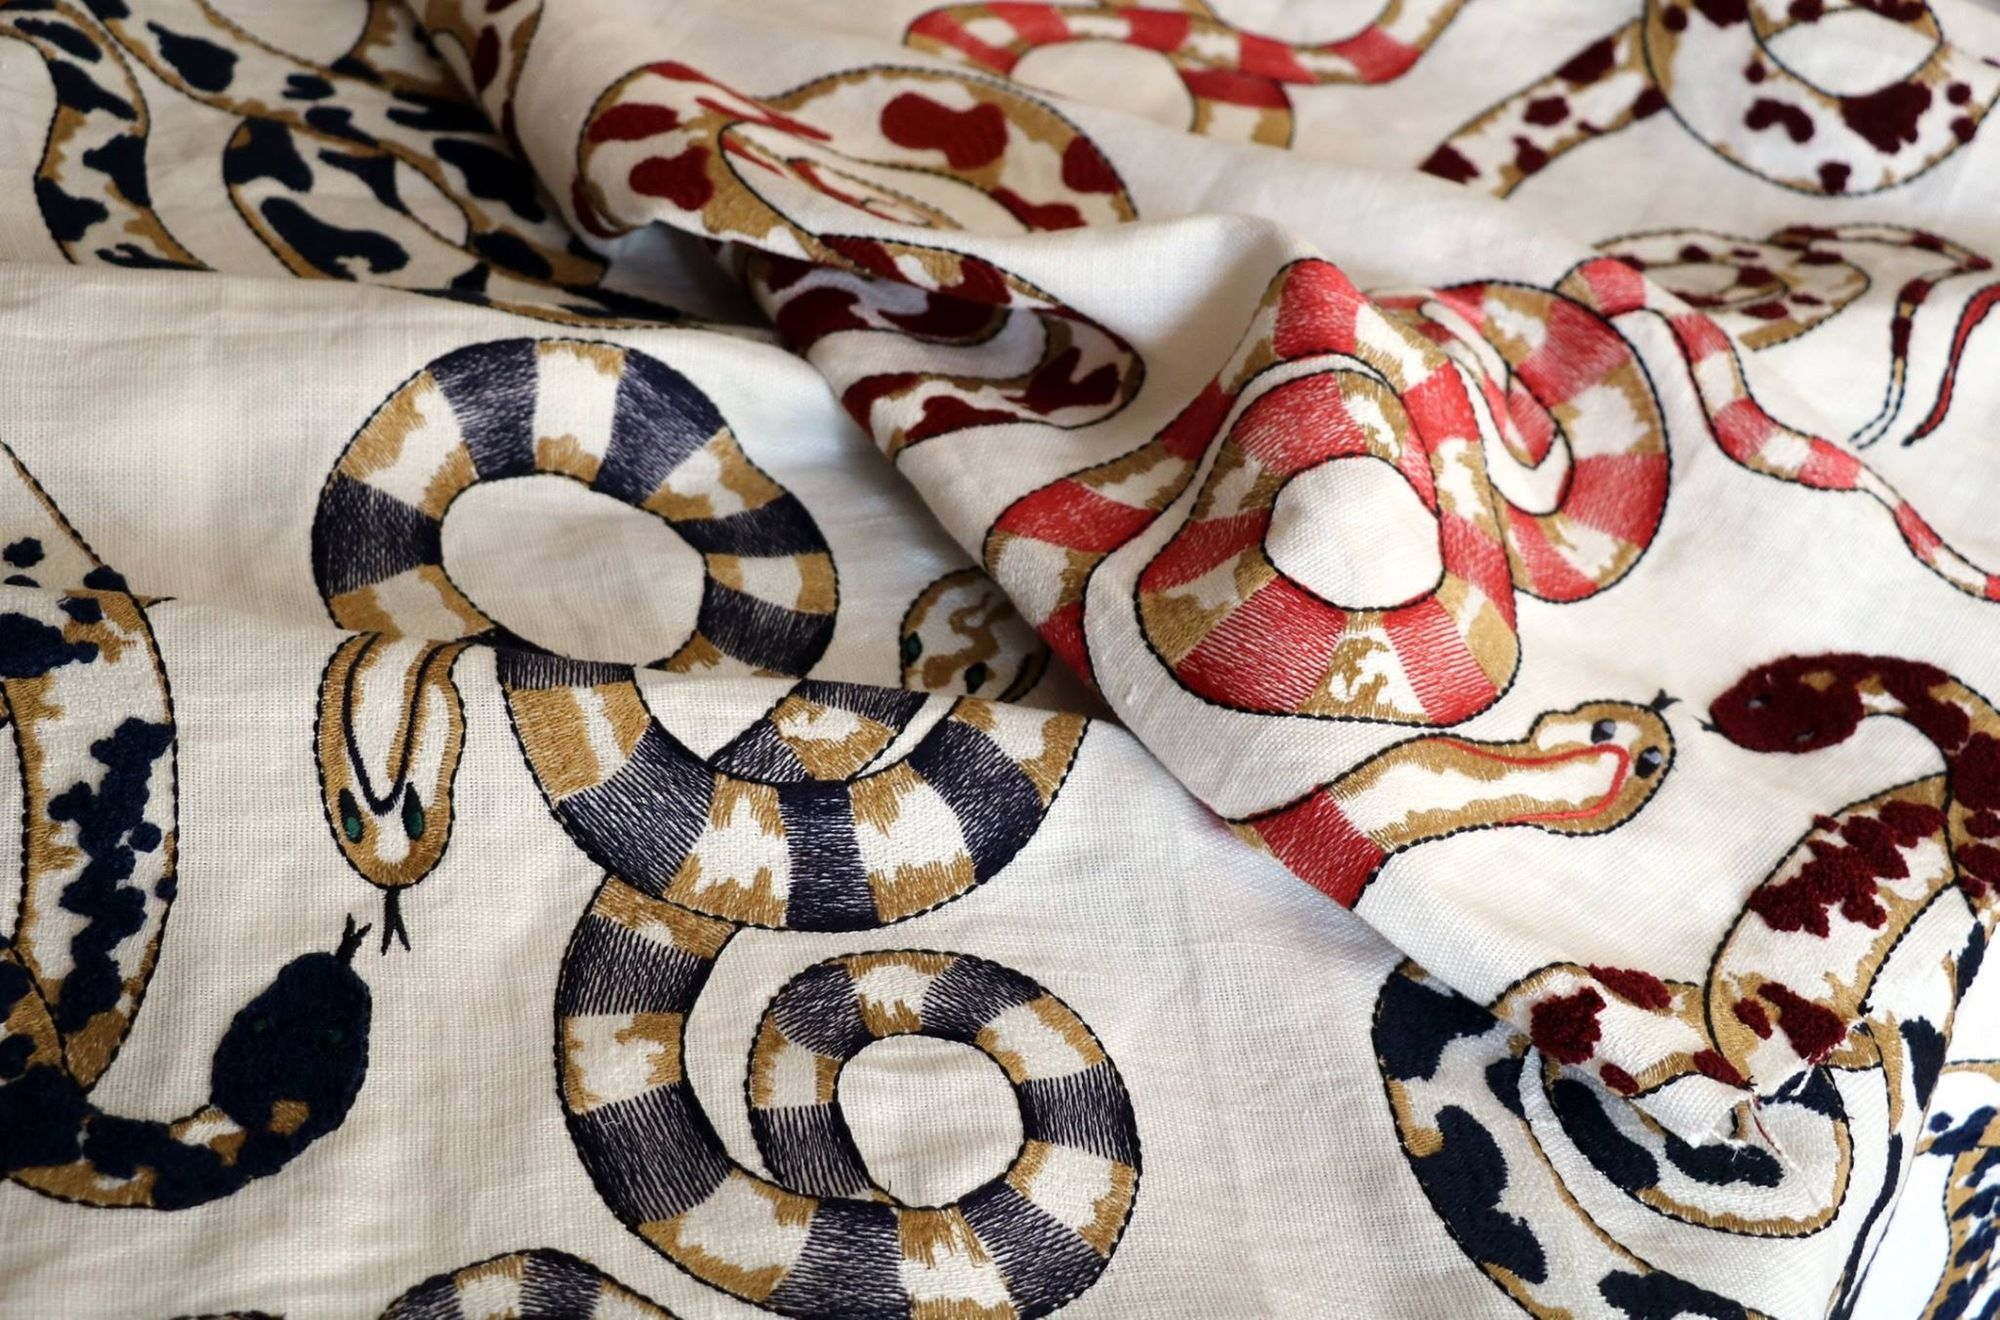 Snakes are having their moment on everything from fabrics and wallcoverings to significant pieces of furniture. One of our favorite items is linen sporting embroidered snakes (Venimeuses) from Pierre Frey. (Image: Pierre Frey)